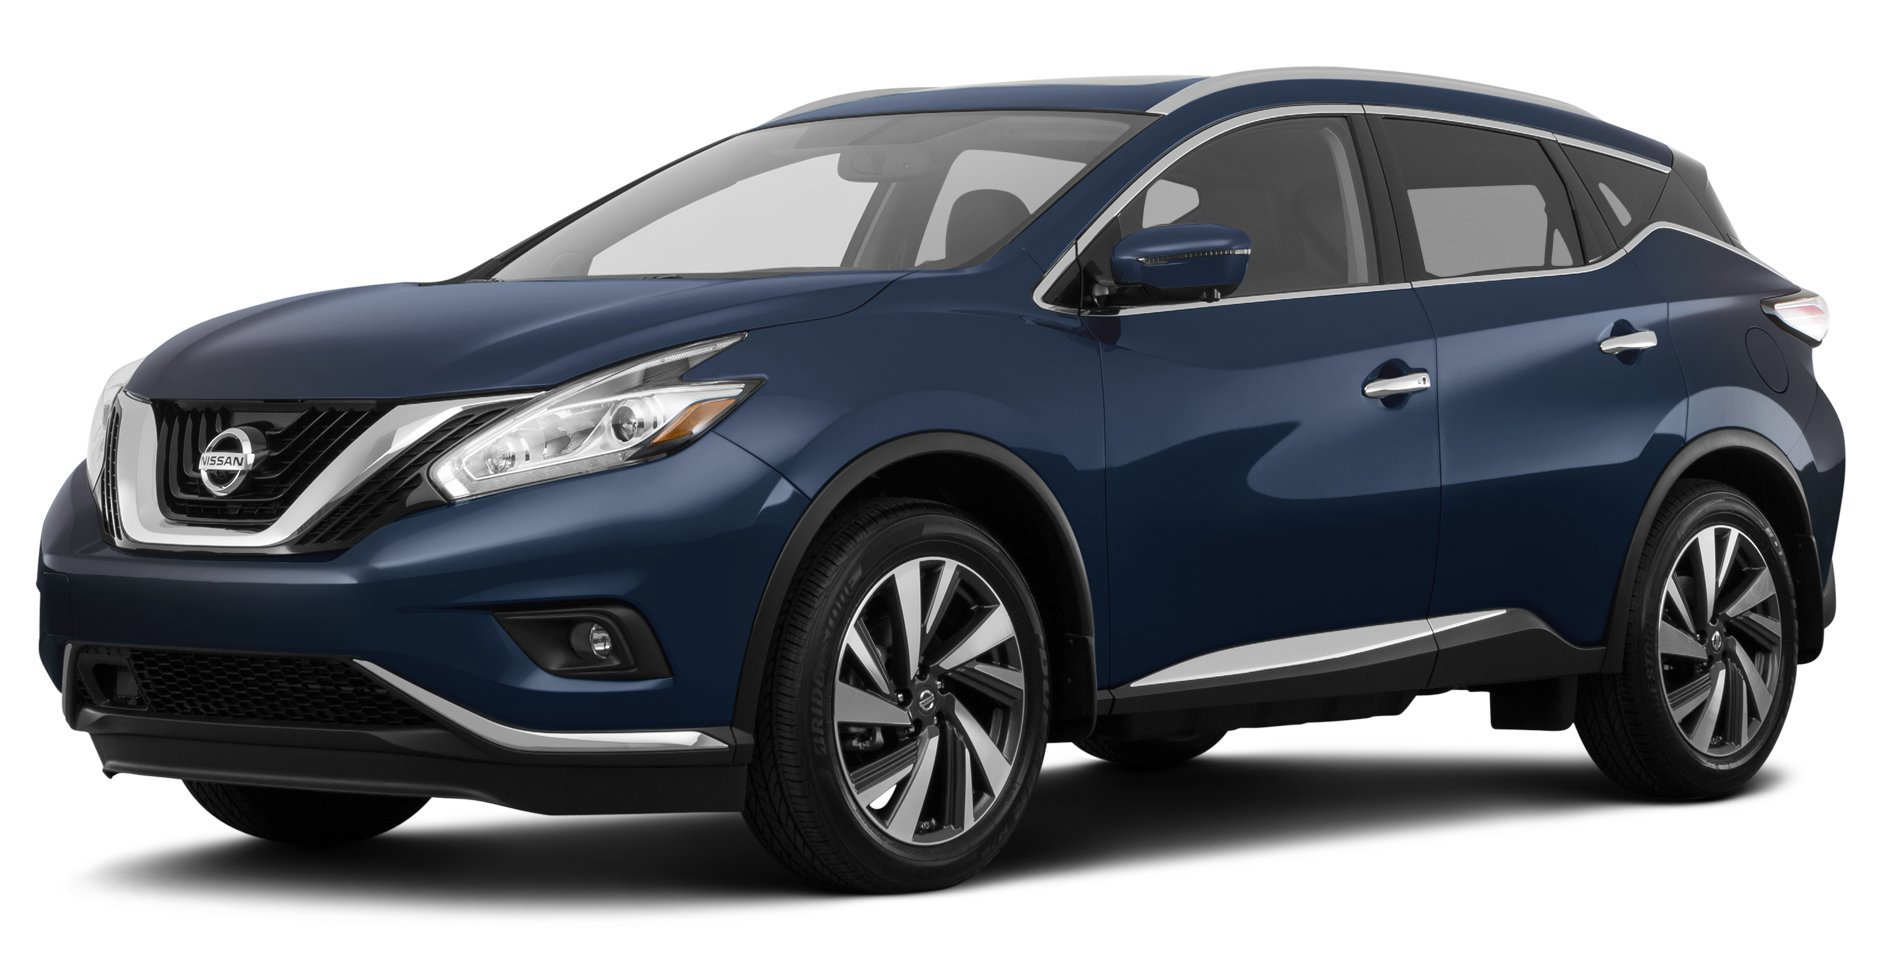 2017 nissan murano reviews images and specs vehicles. Black Bedroom Furniture Sets. Home Design Ideas